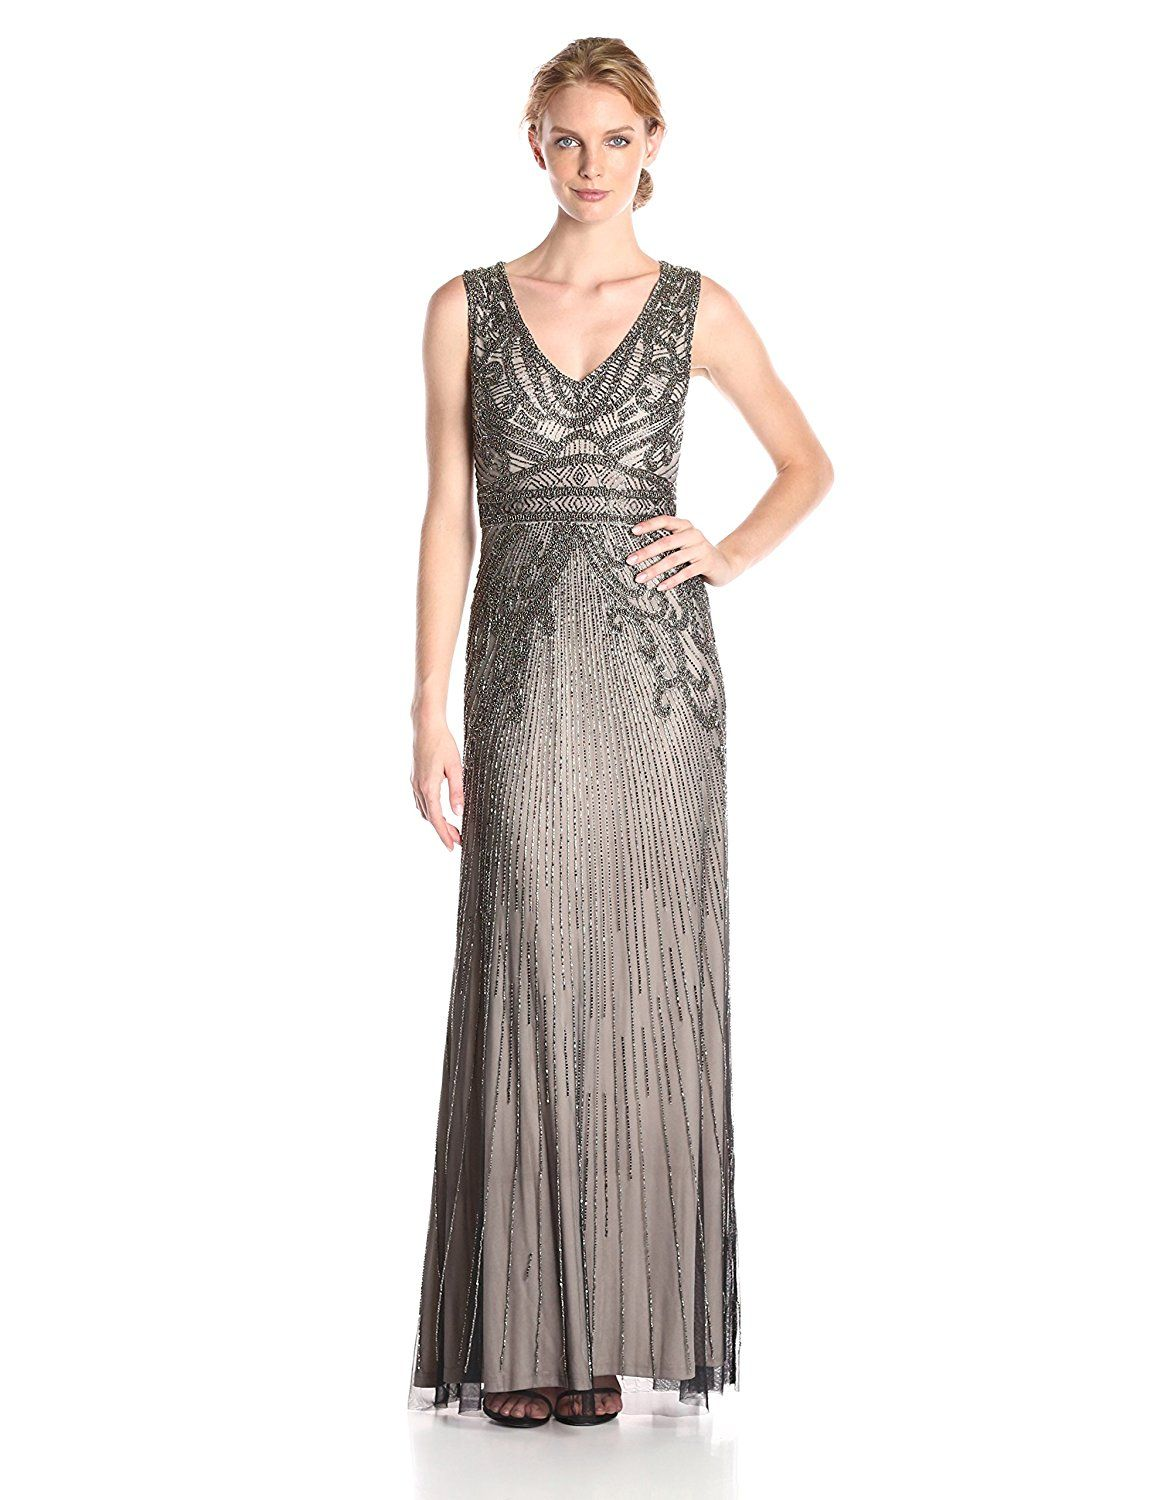 Adrianna Papell Women\'s Fully Beaded Sleeveless Gown with Waist ...